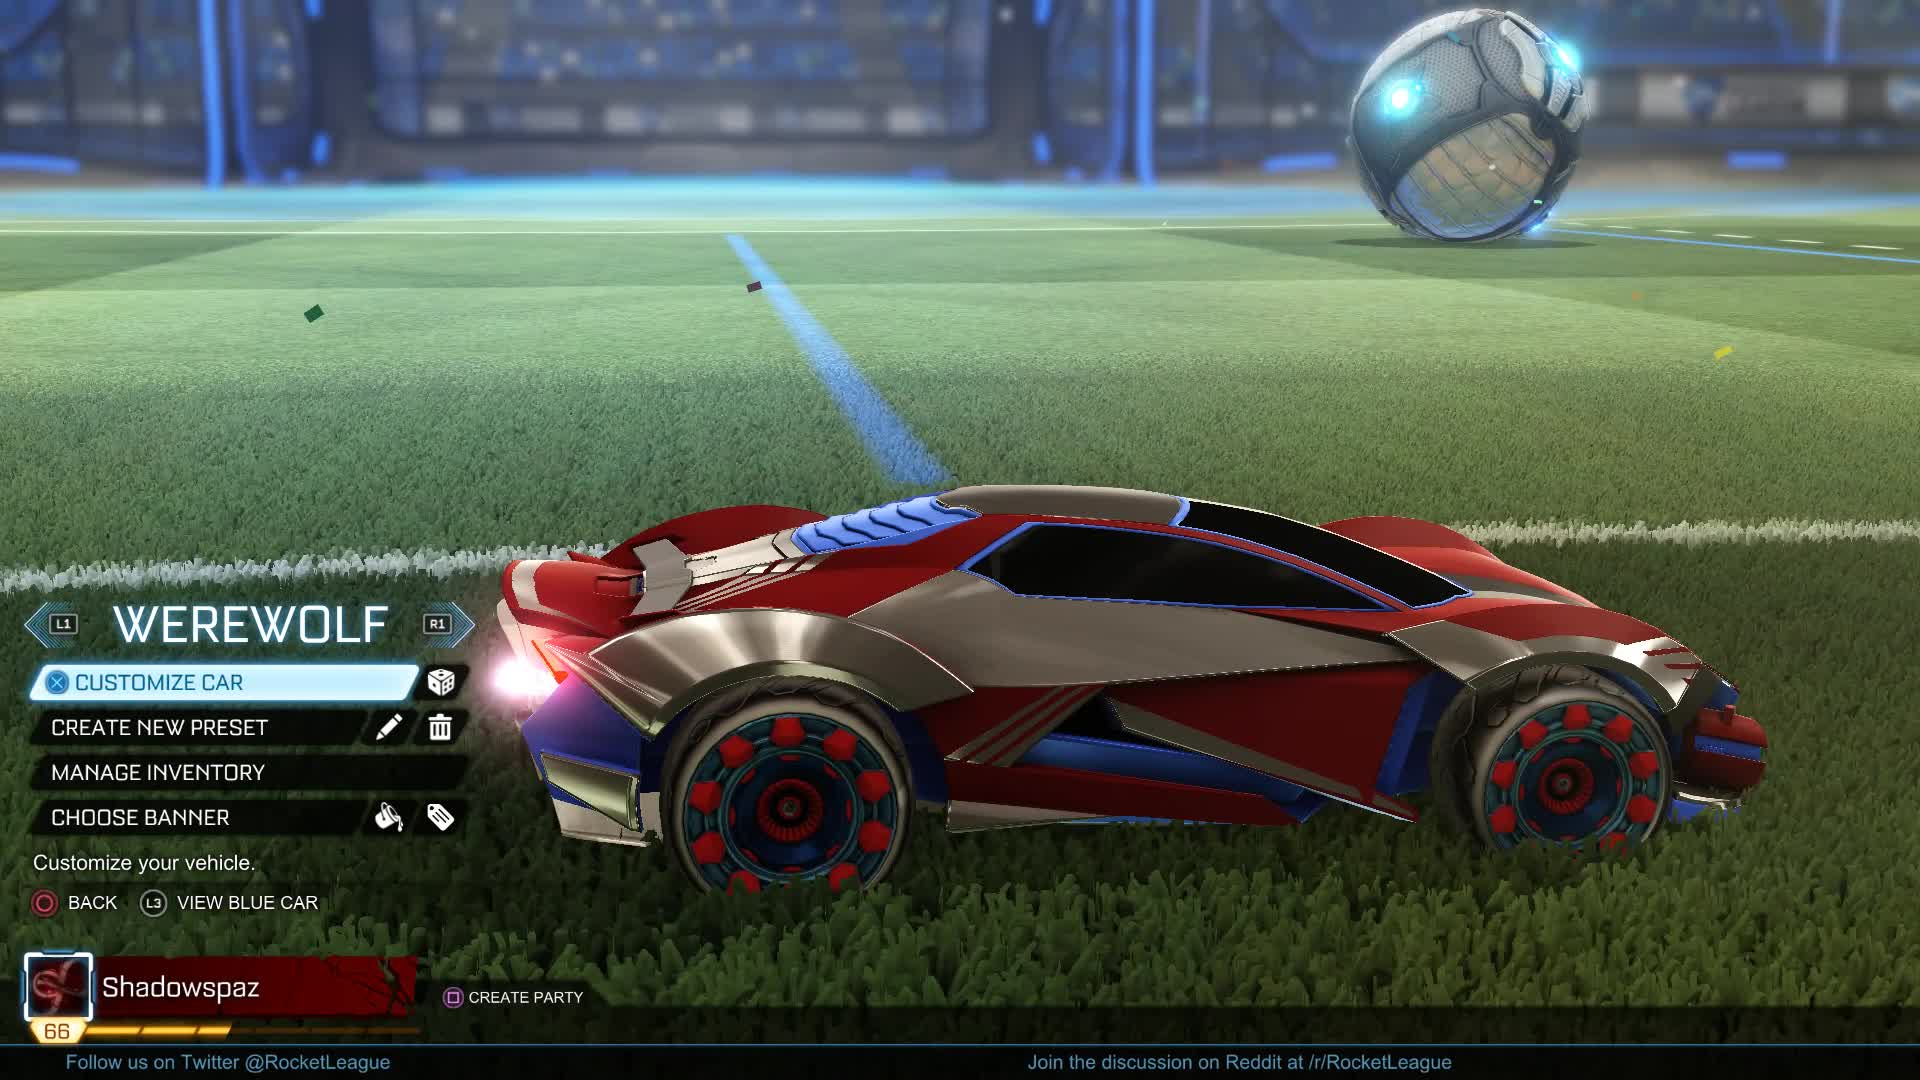 Rocket League Werewolf Designs Gifs Search | Search & Share on Homdor